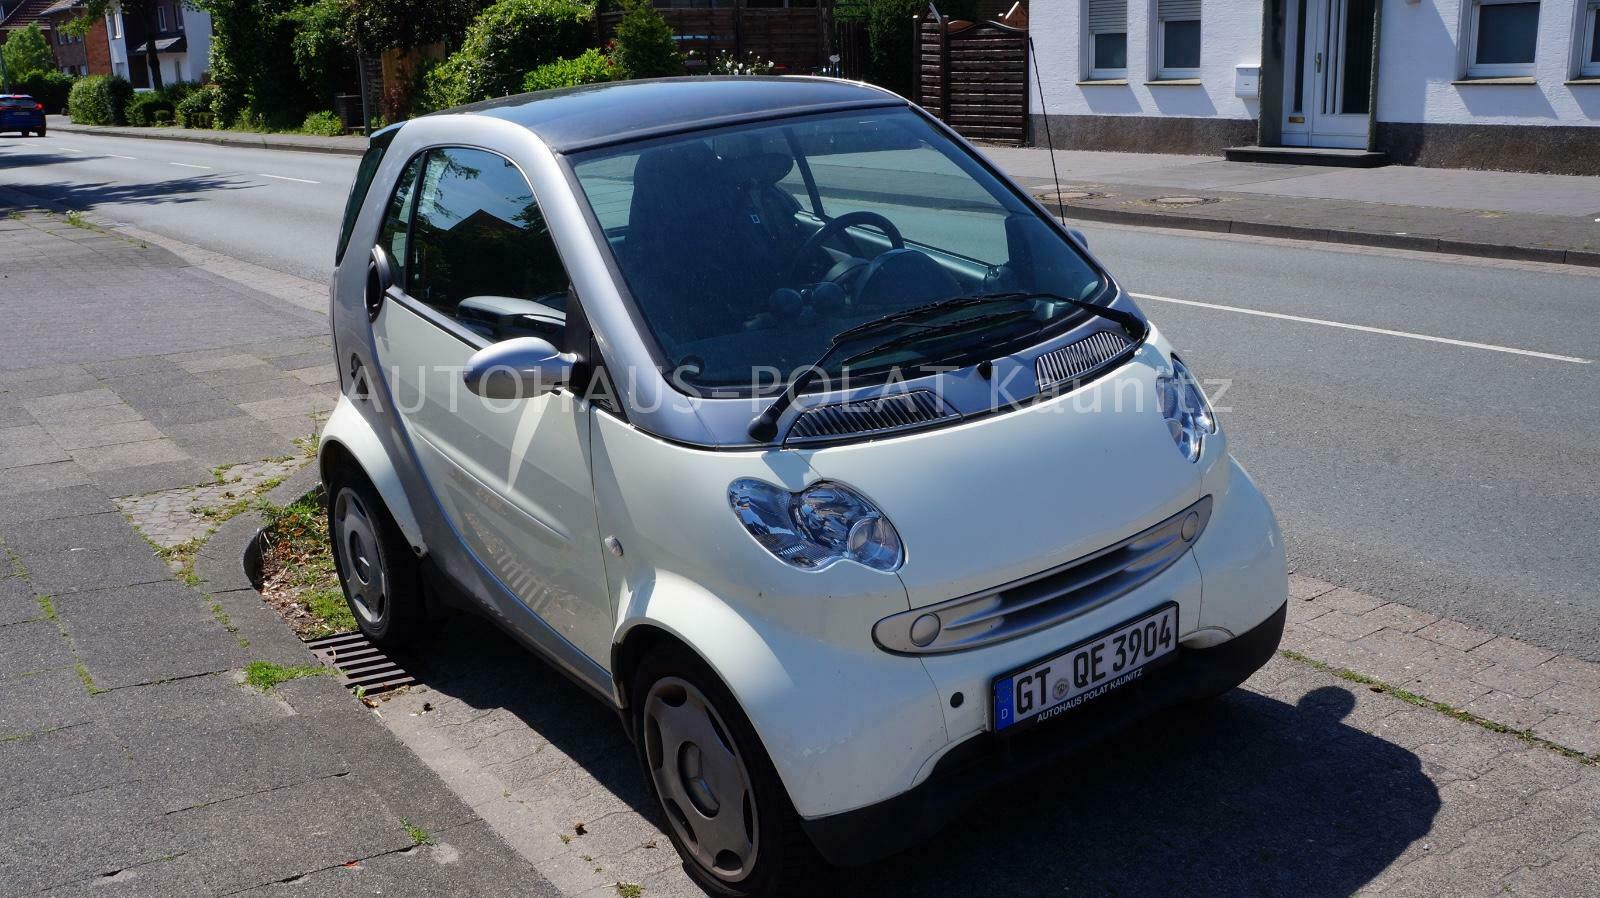 SMART coupe / fortwo coupe CDI Basis/PANORAMA